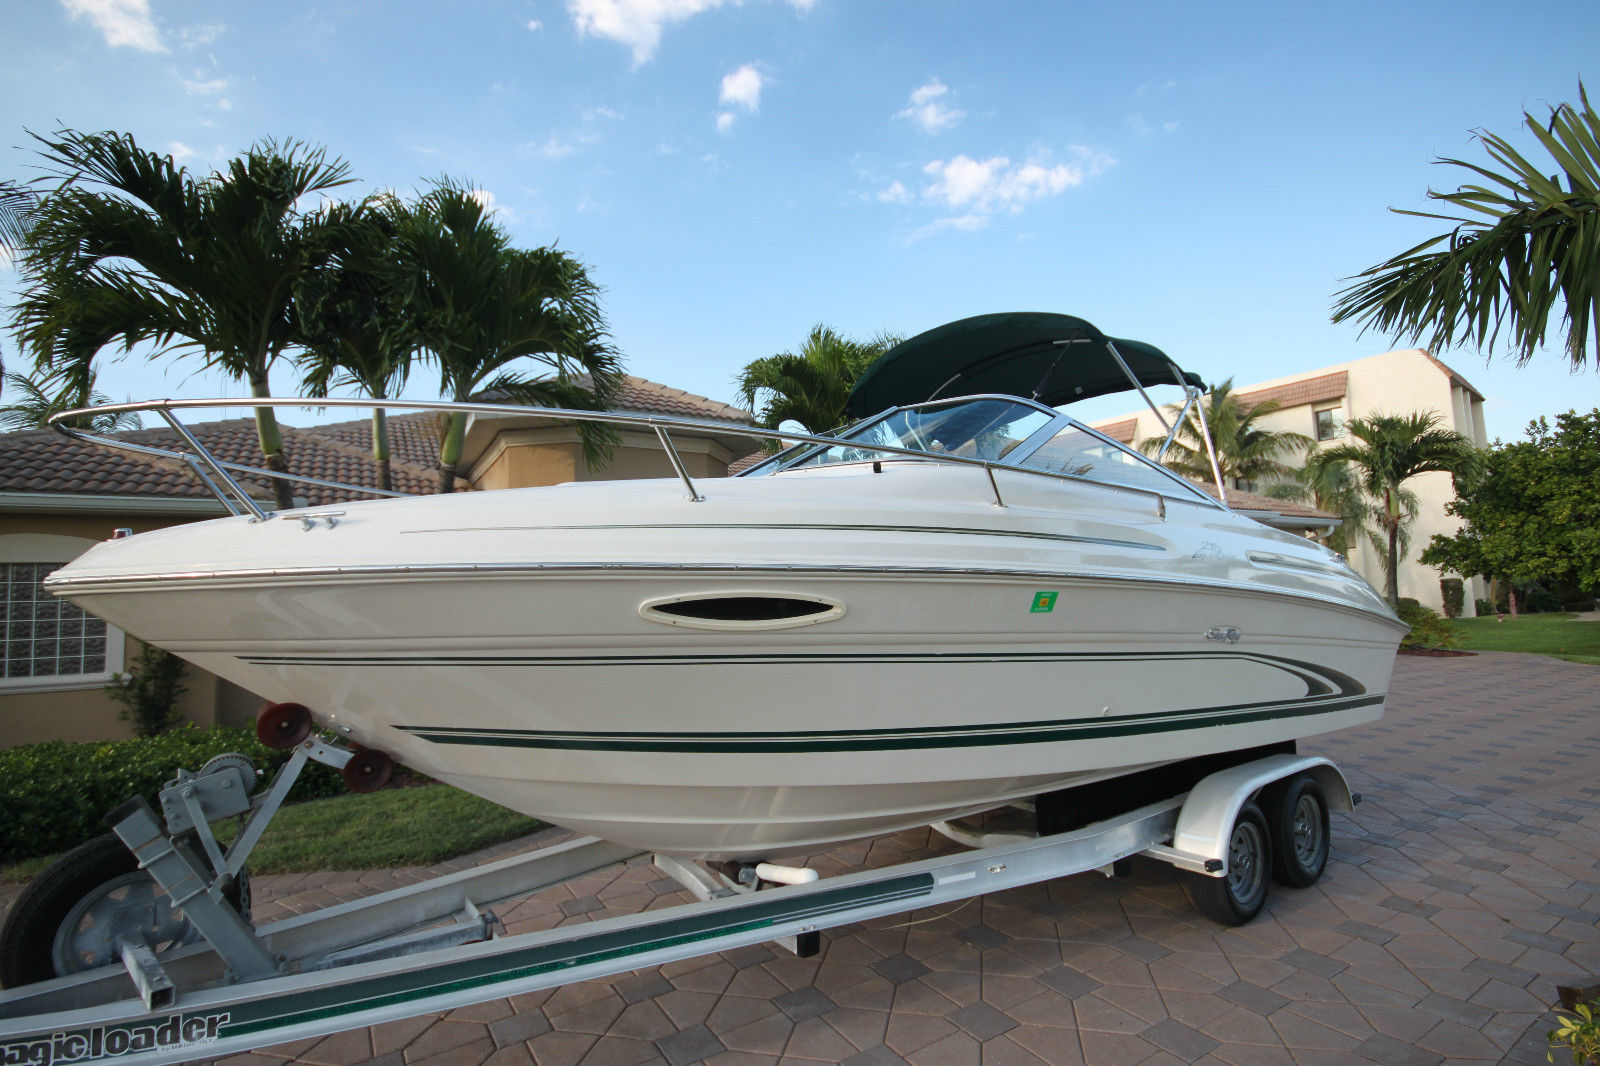 sea ray 215 express cruiser owners manual